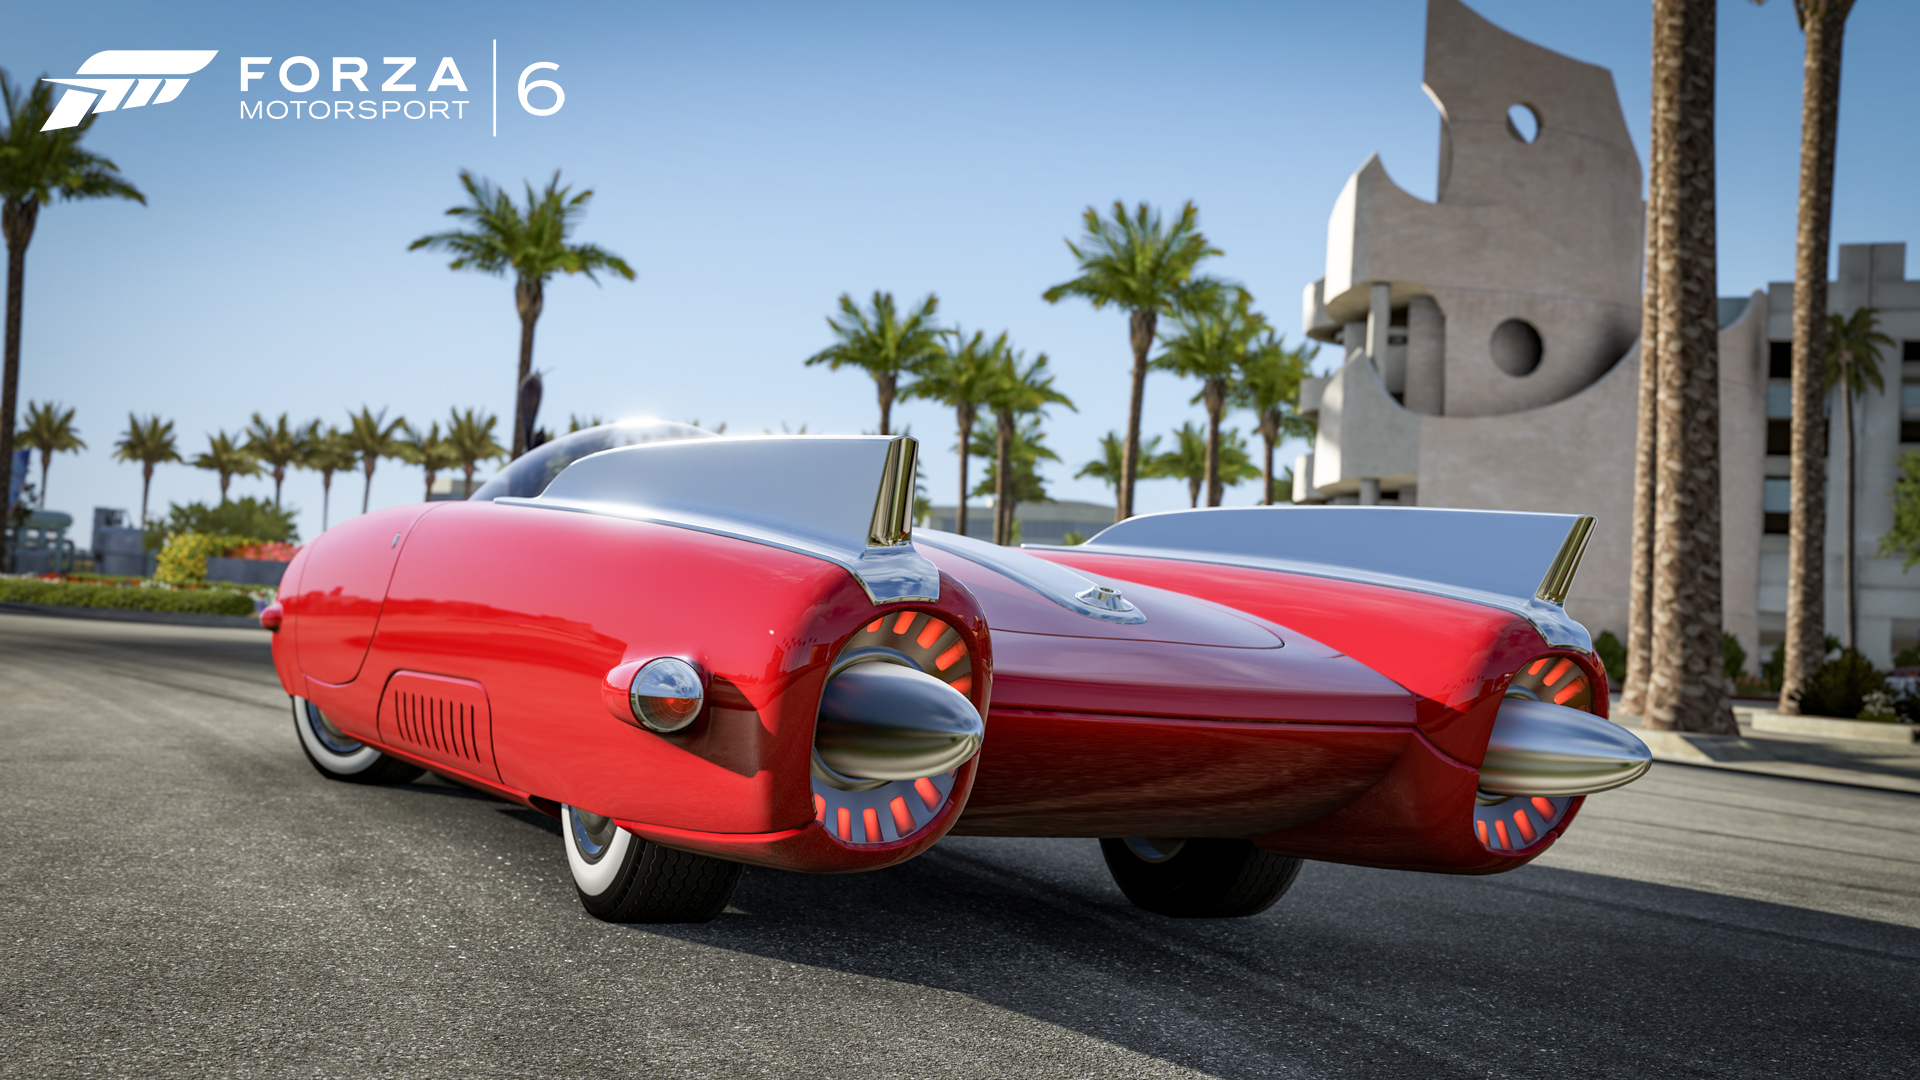 Fallout 4 Chryslus Rocket 69 Coming To Forza Motorsport 6